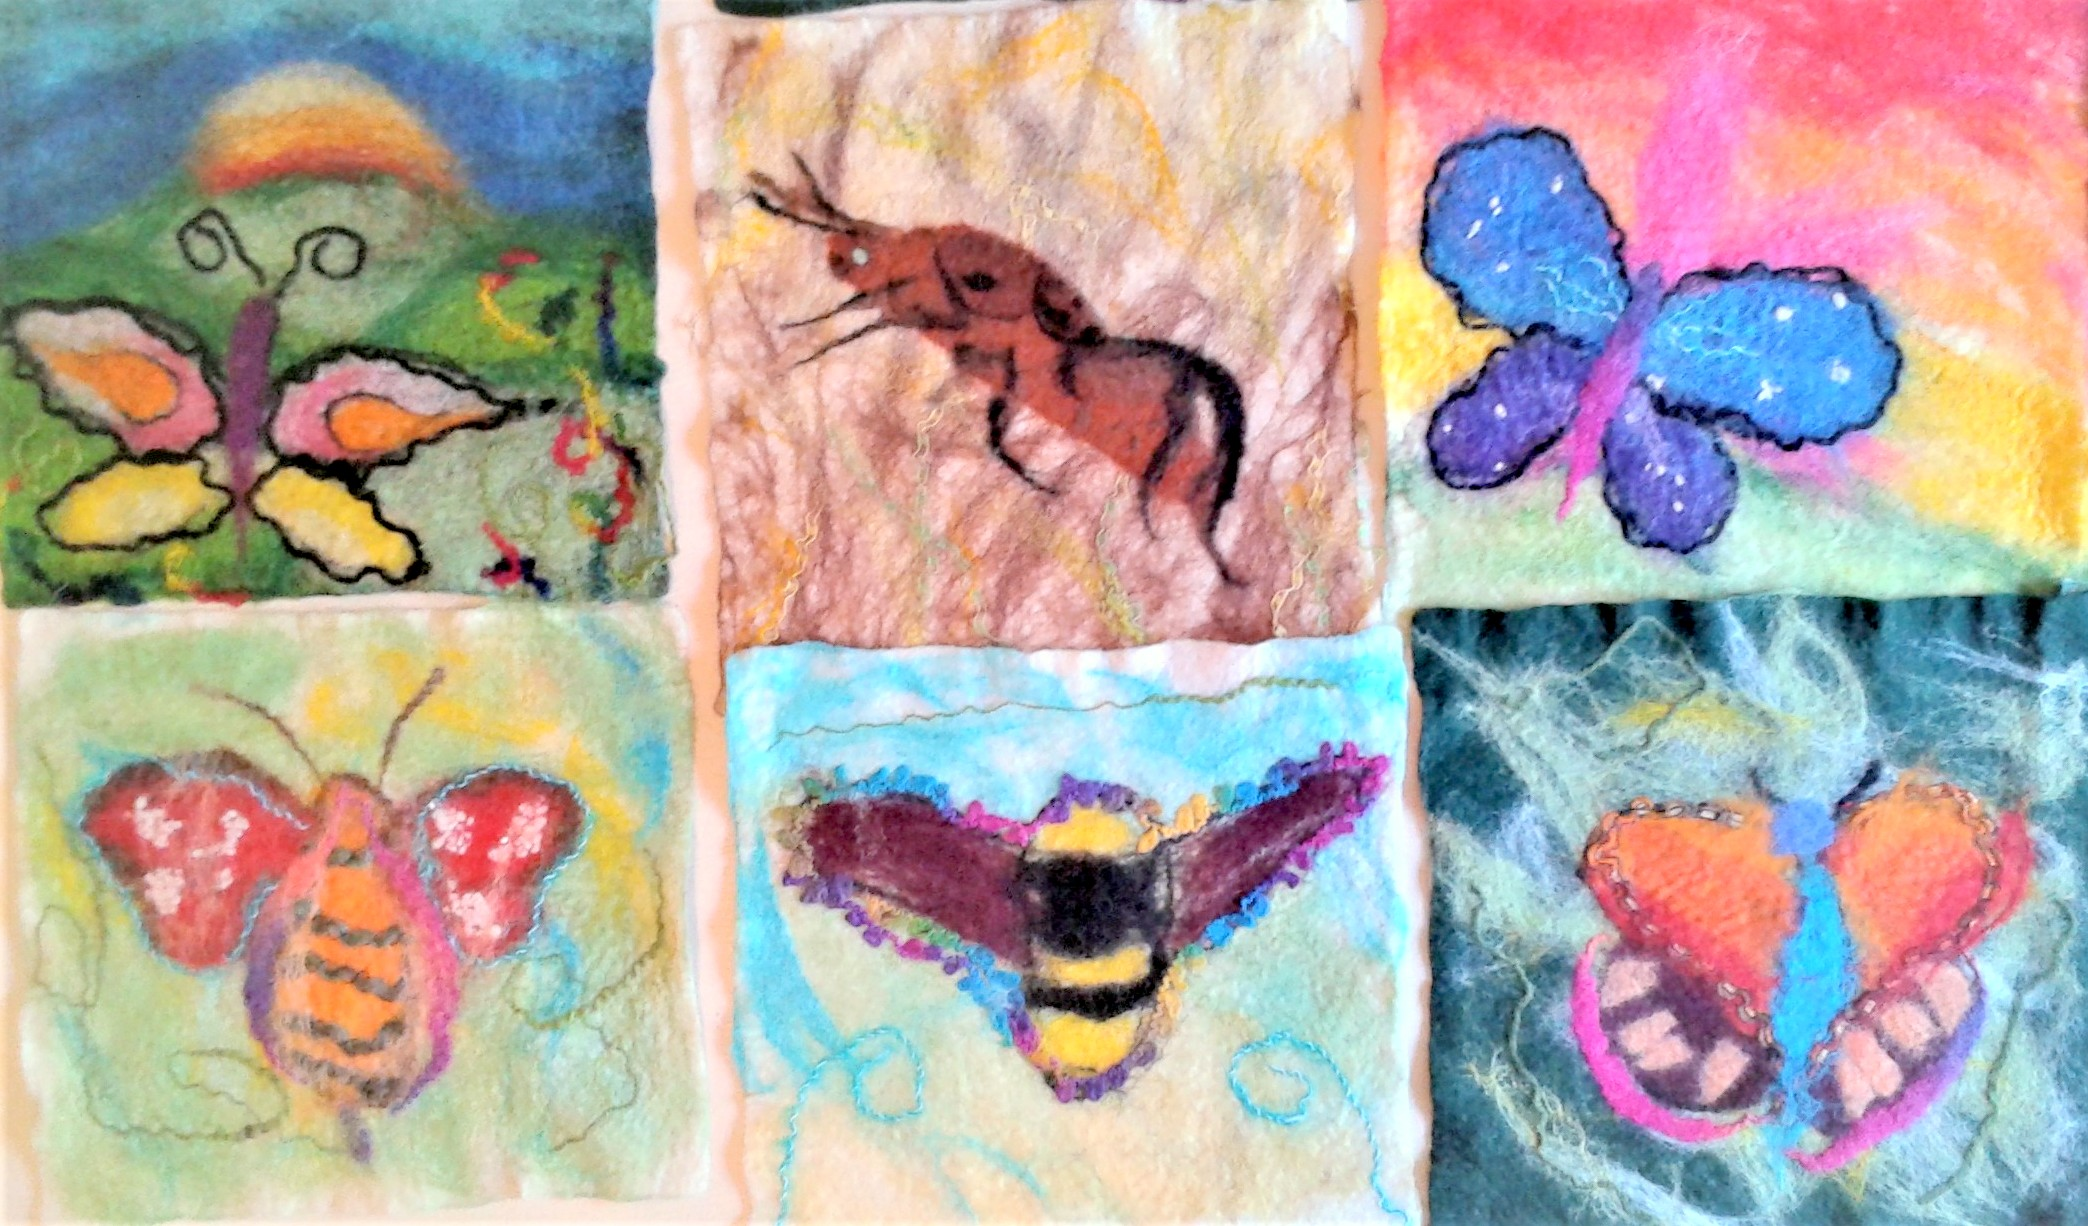 Felt making project at Heathfield and Knoll school with  Textiles Tutor Raya Brown